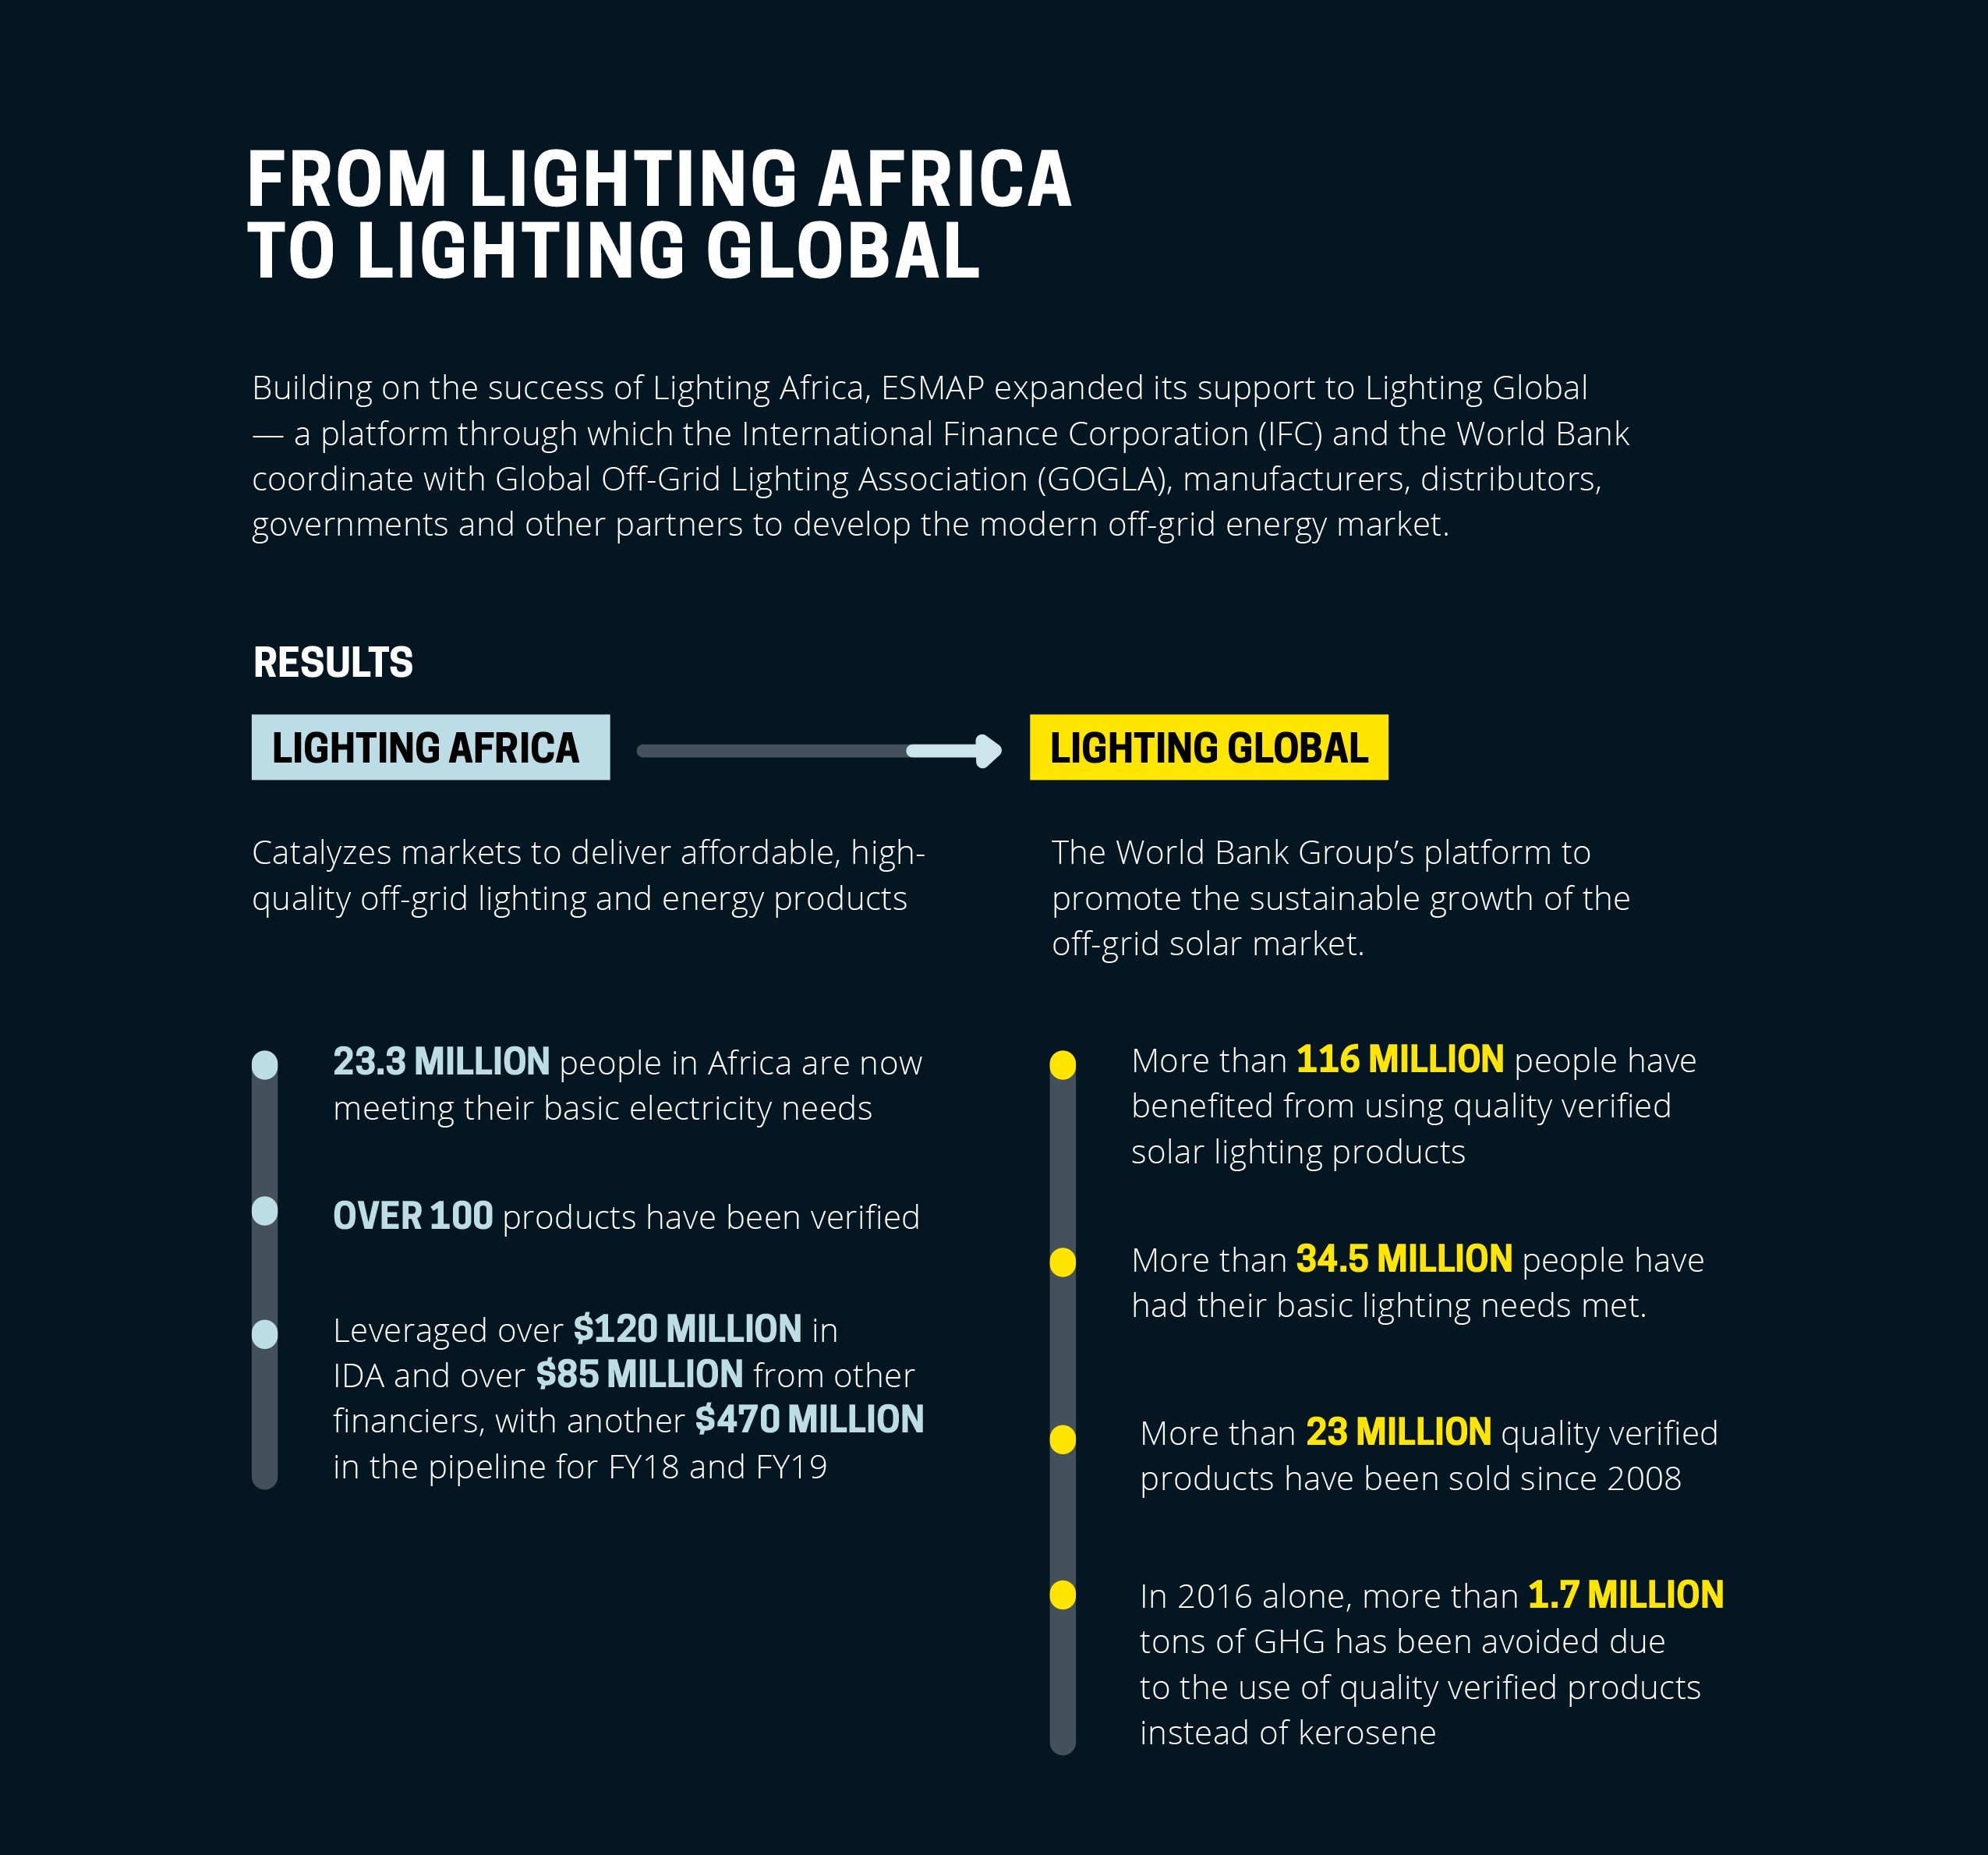 lighting-africa-update.png